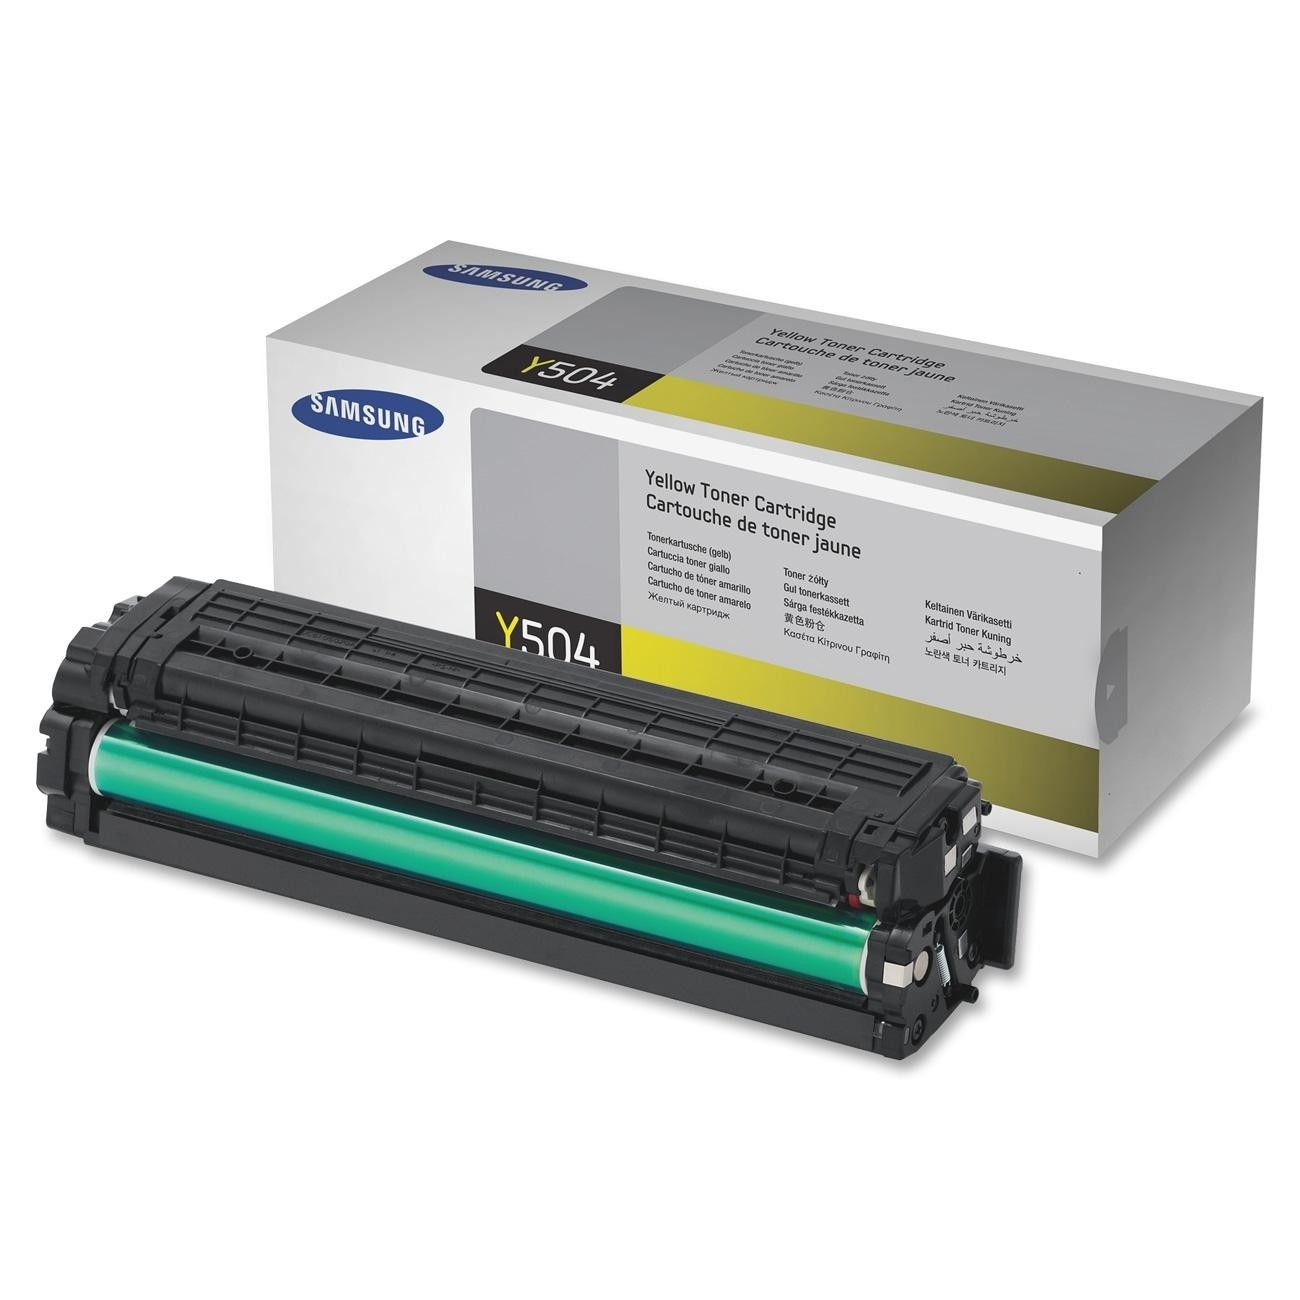 Cltys toner cartridge page yield yellow products